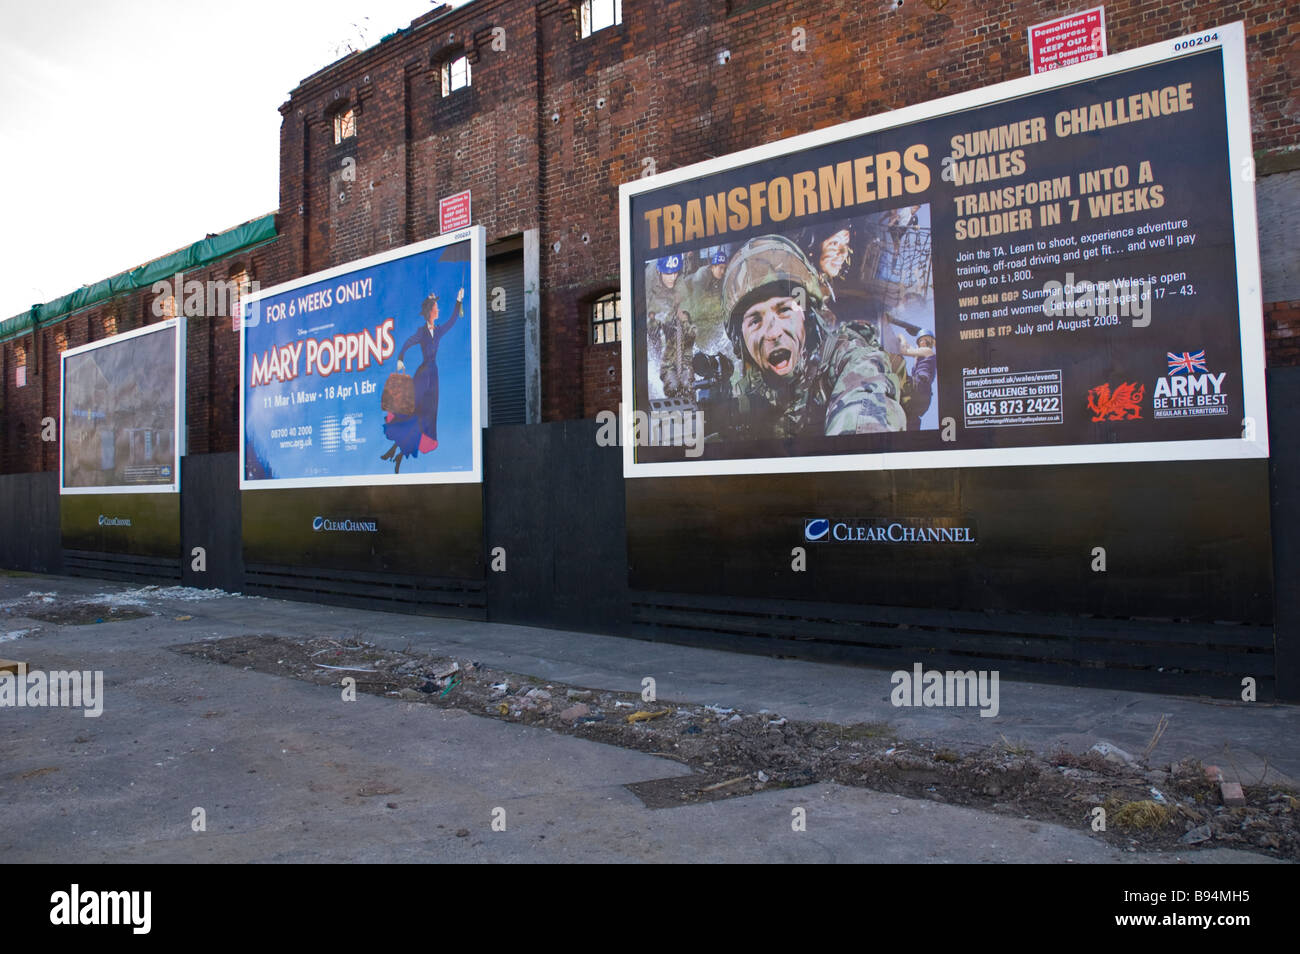 Advertising billboards on derelict building in Newport South Wales UK - Stock Image